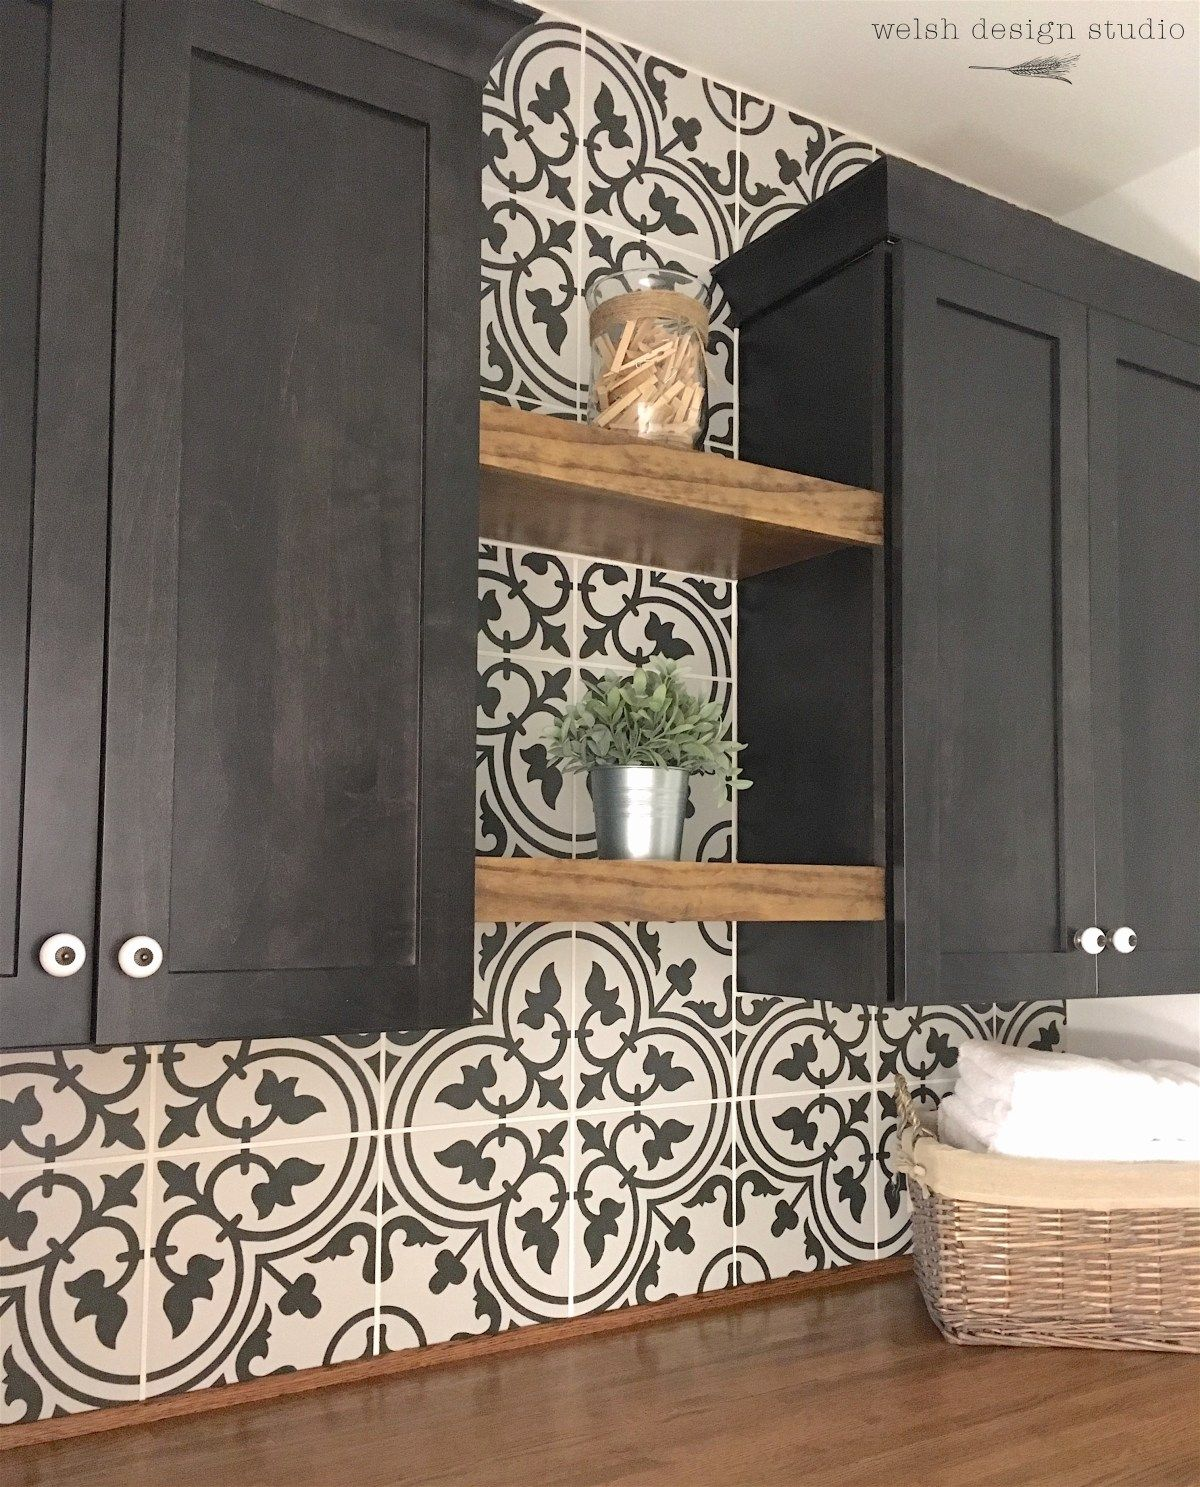 The Laundry Room Makeover is Finally Done! – Welsh Design Studio #laundryrooms